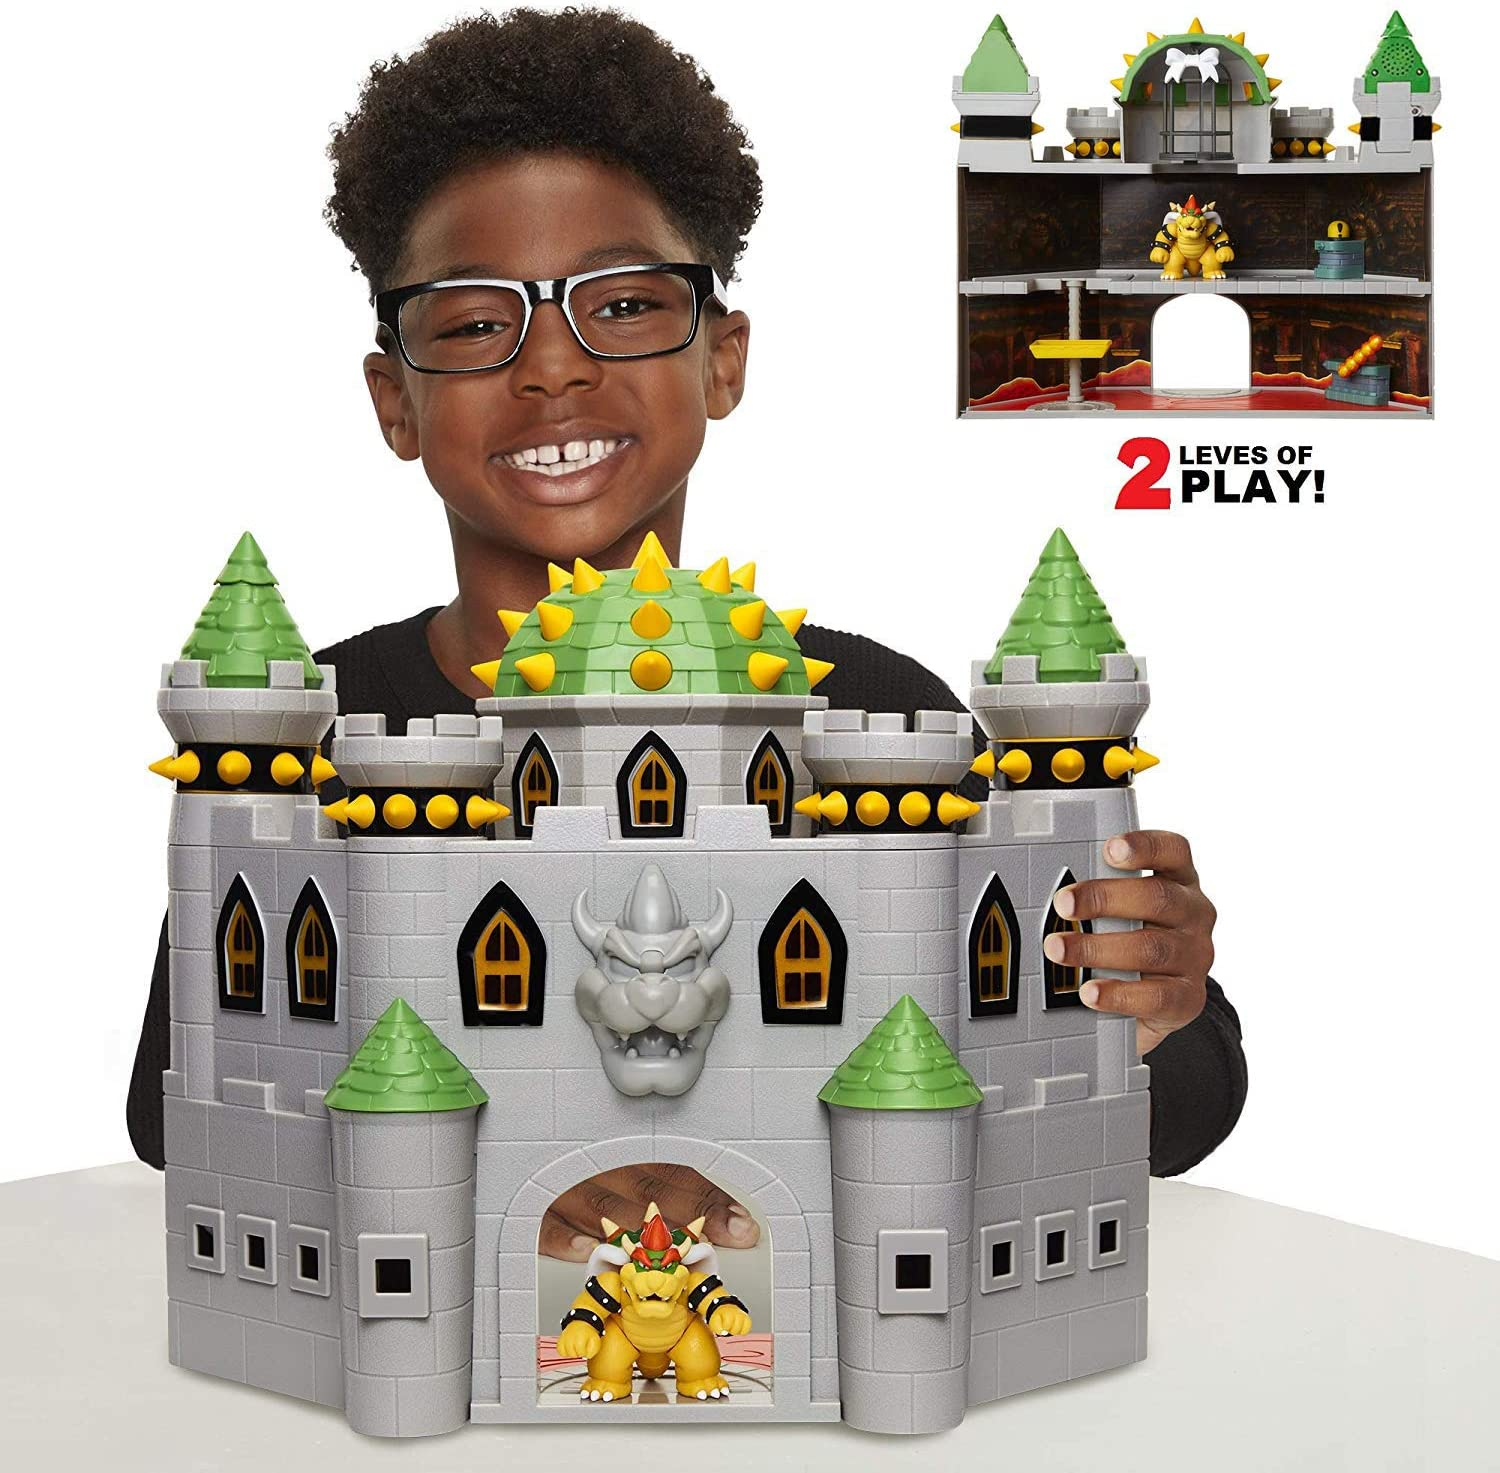 Nintendo Bowser S Castle Super Mario Deluxe Bowser S Castle Playset With 2 5 Exclusive Articulated Bowser Action Figure Interactive Play Set With